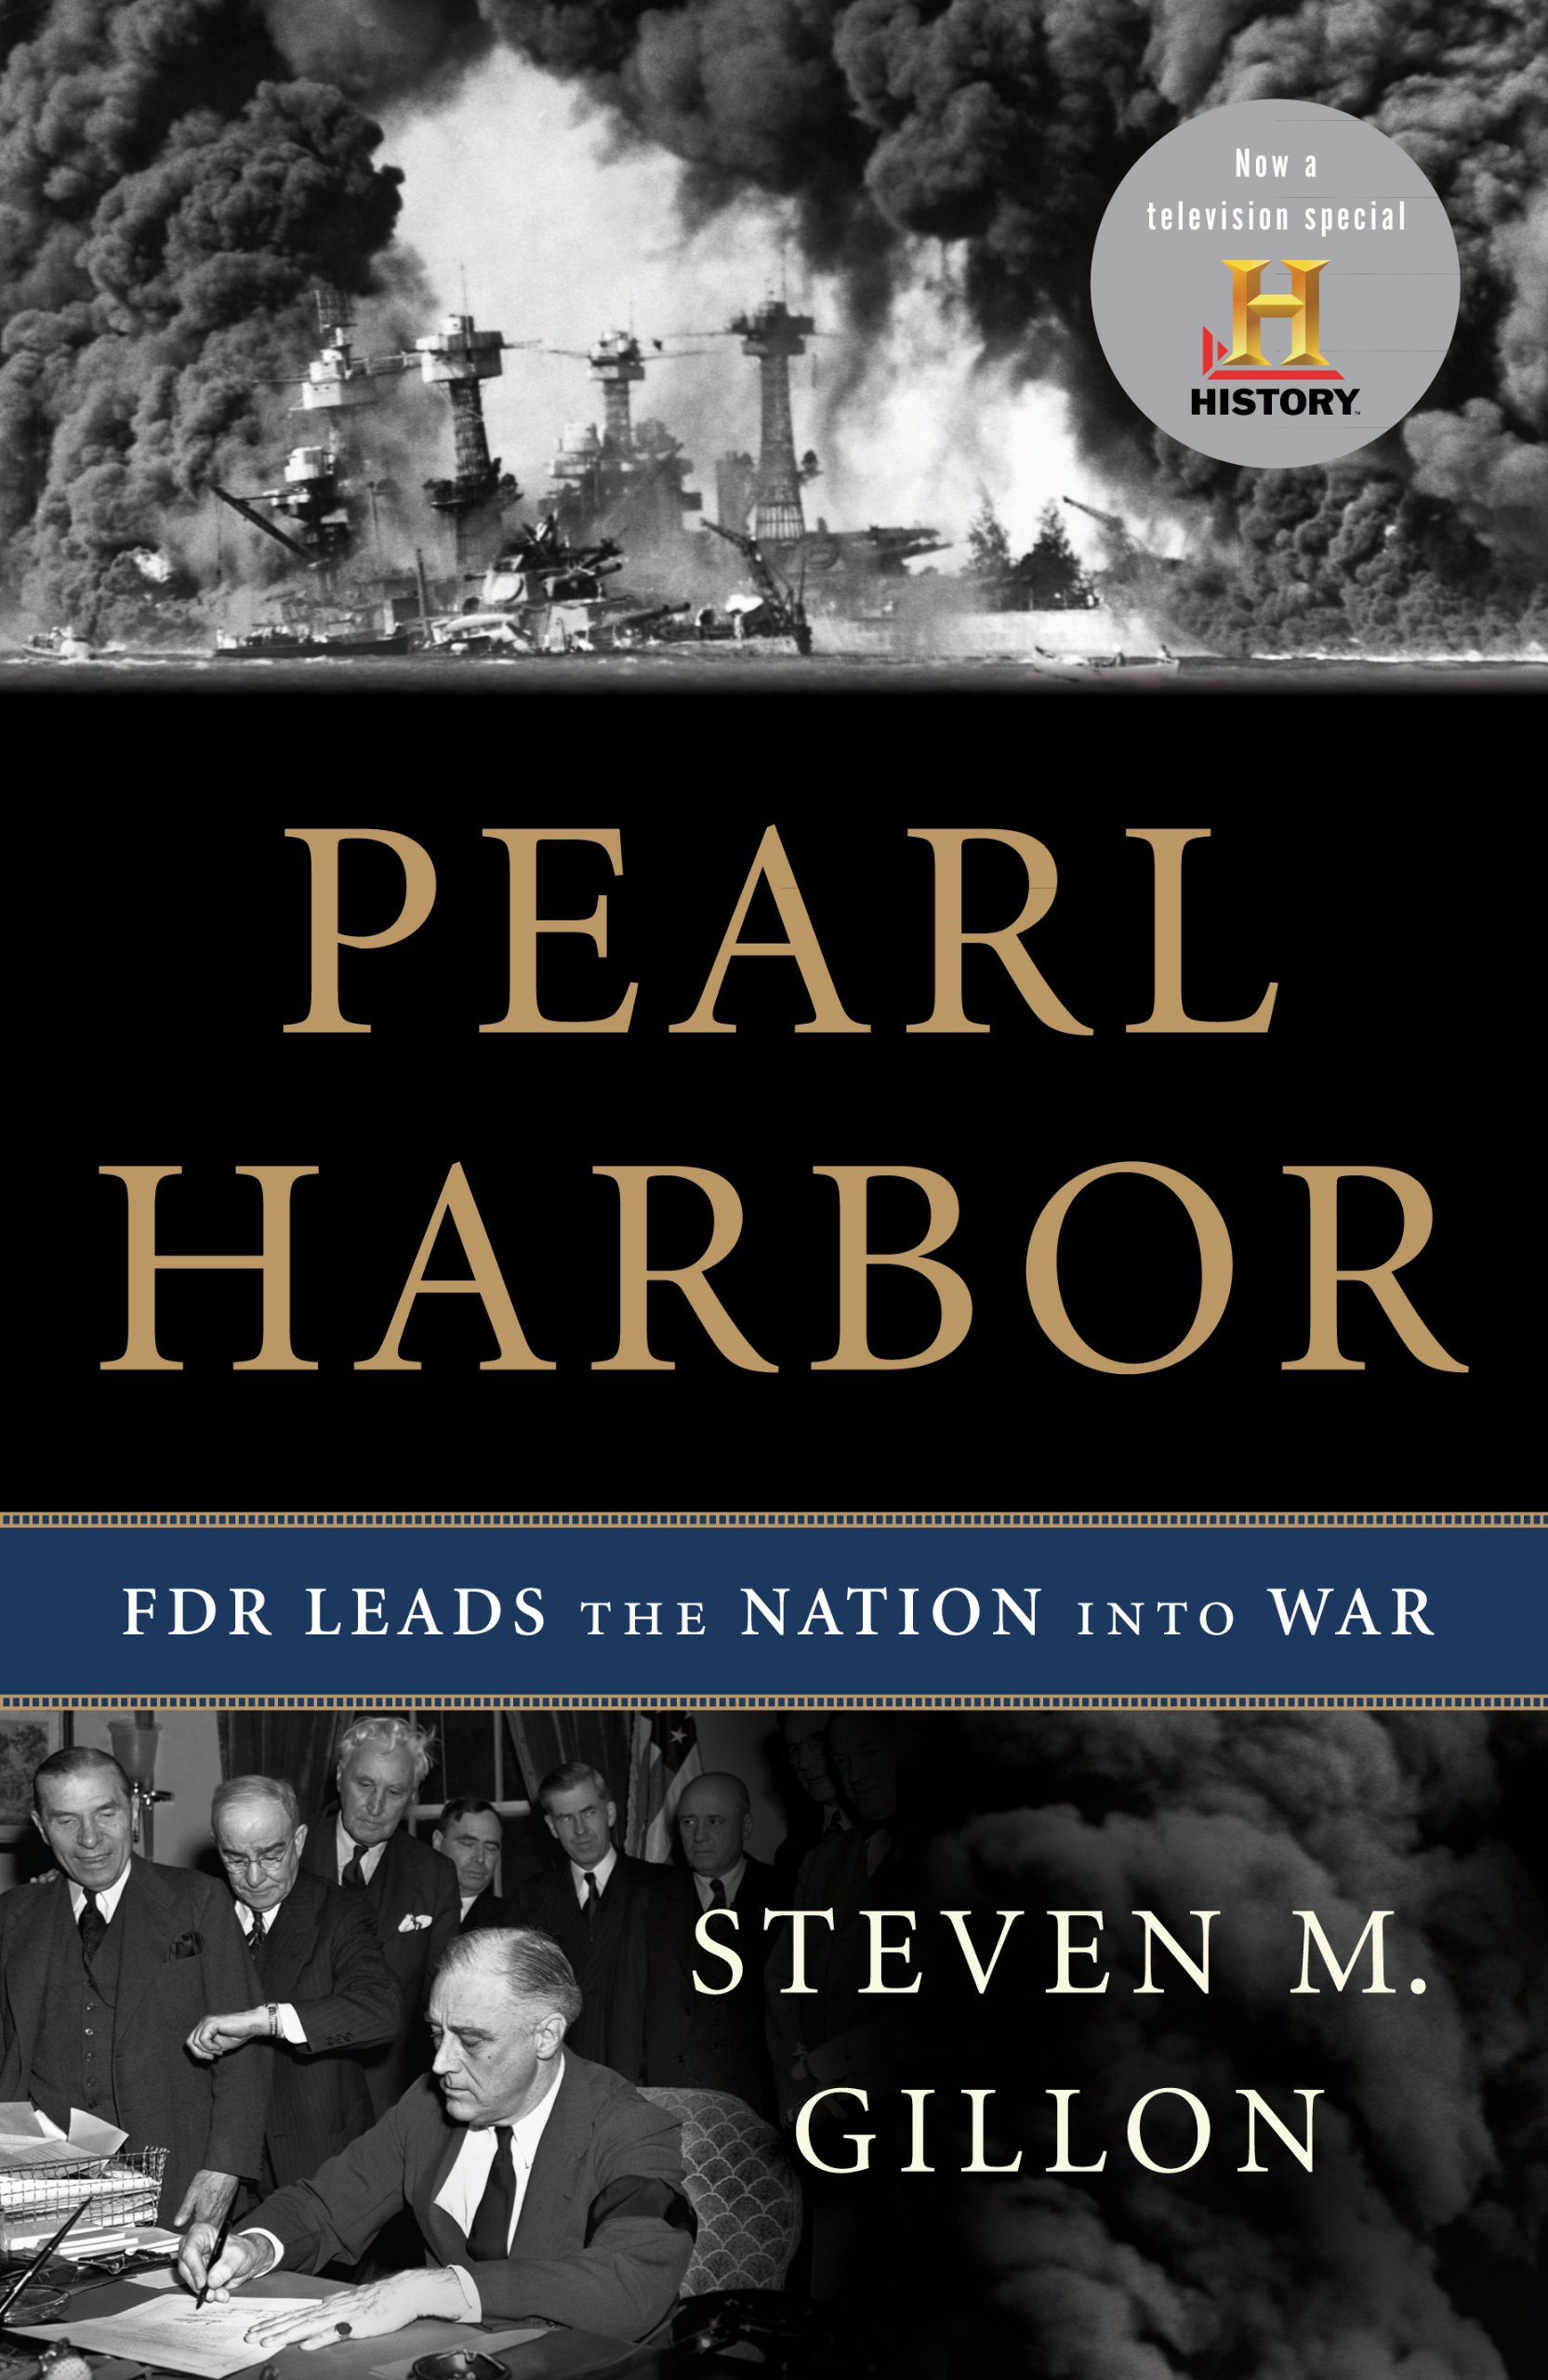 Pearl Harbor: FDR Leads the Nation to War (Thorndike Press Large Print Nonfiction) pdf